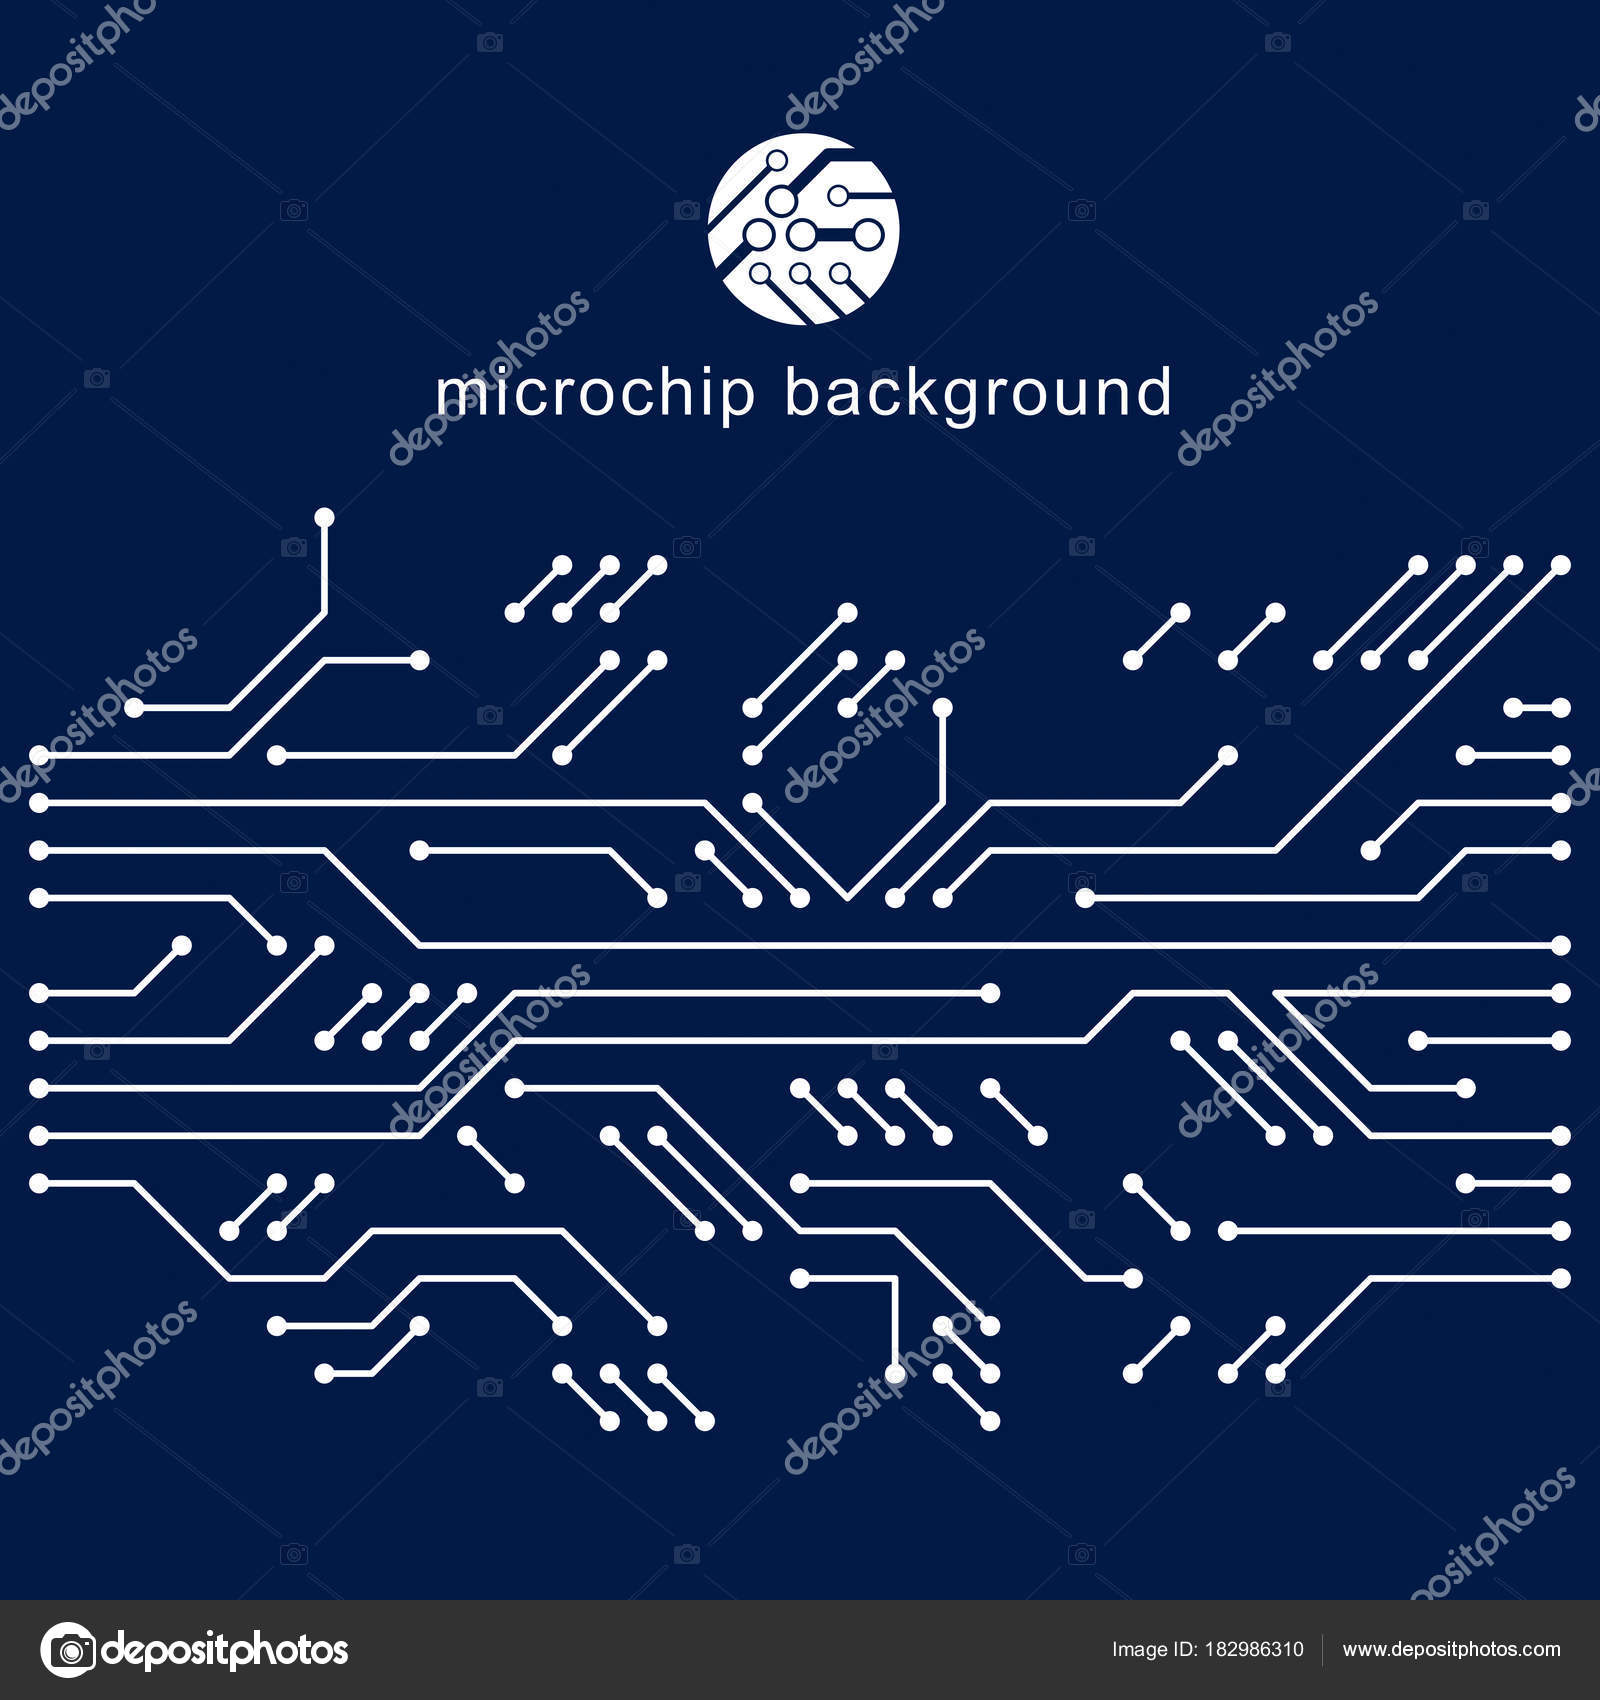 Vector Circuit Board Digital Technologies Abstraction Computer Background With Place For Text Microprocessor Scheme Futuristic Design Abstract